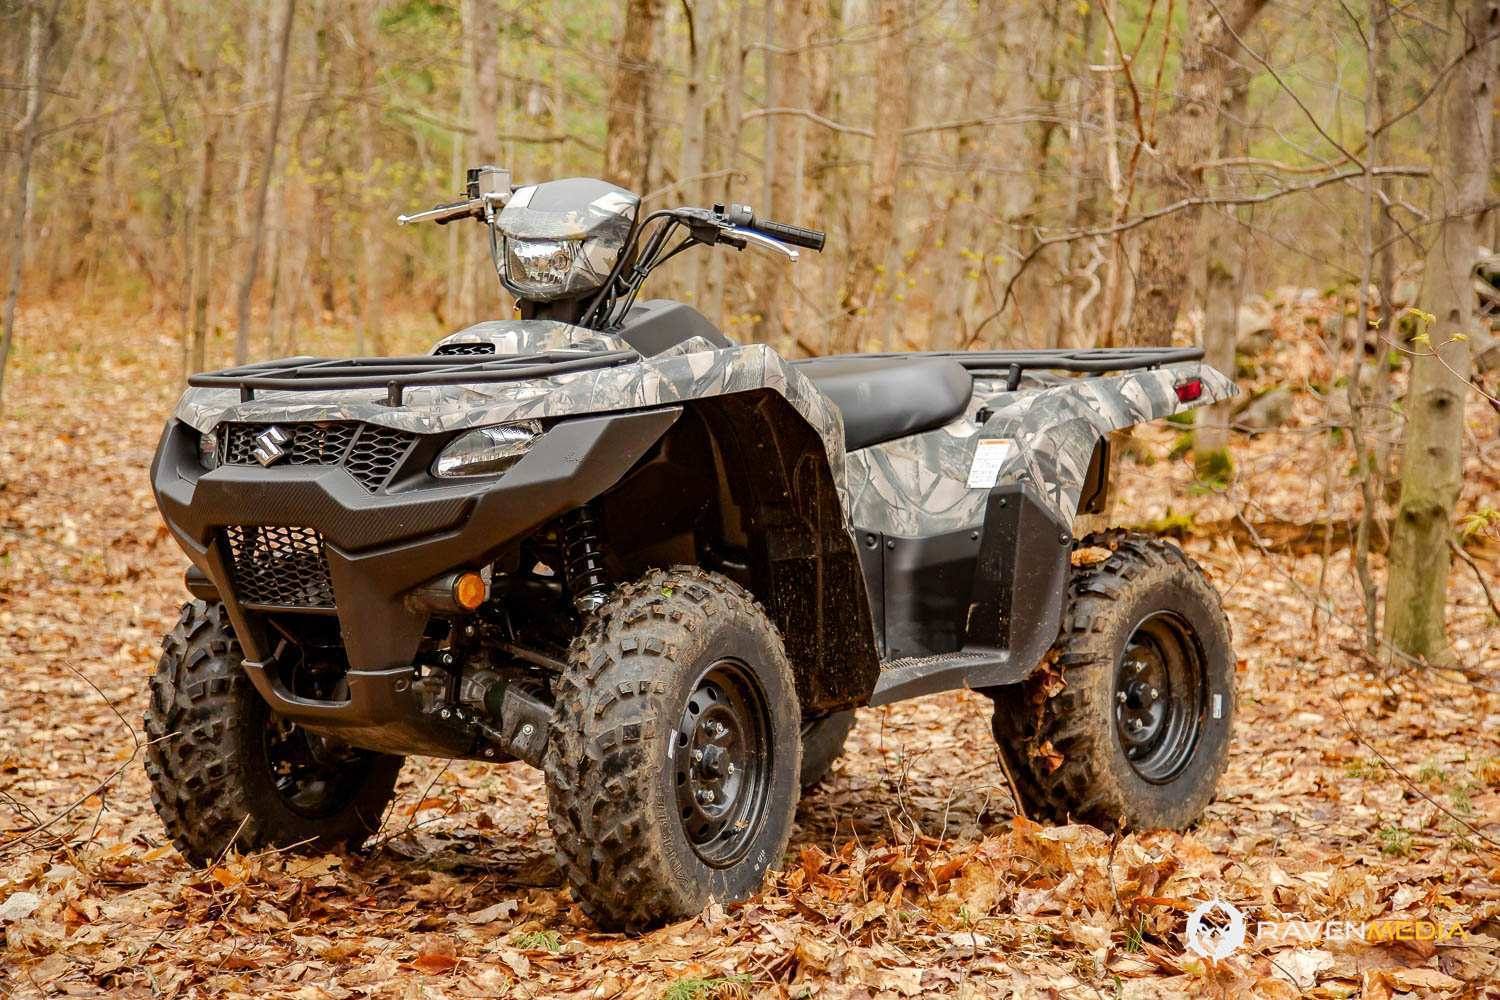 98 New 2019 Suzuki 750 King Quad Engine by 2019 Suzuki 750 King Quad